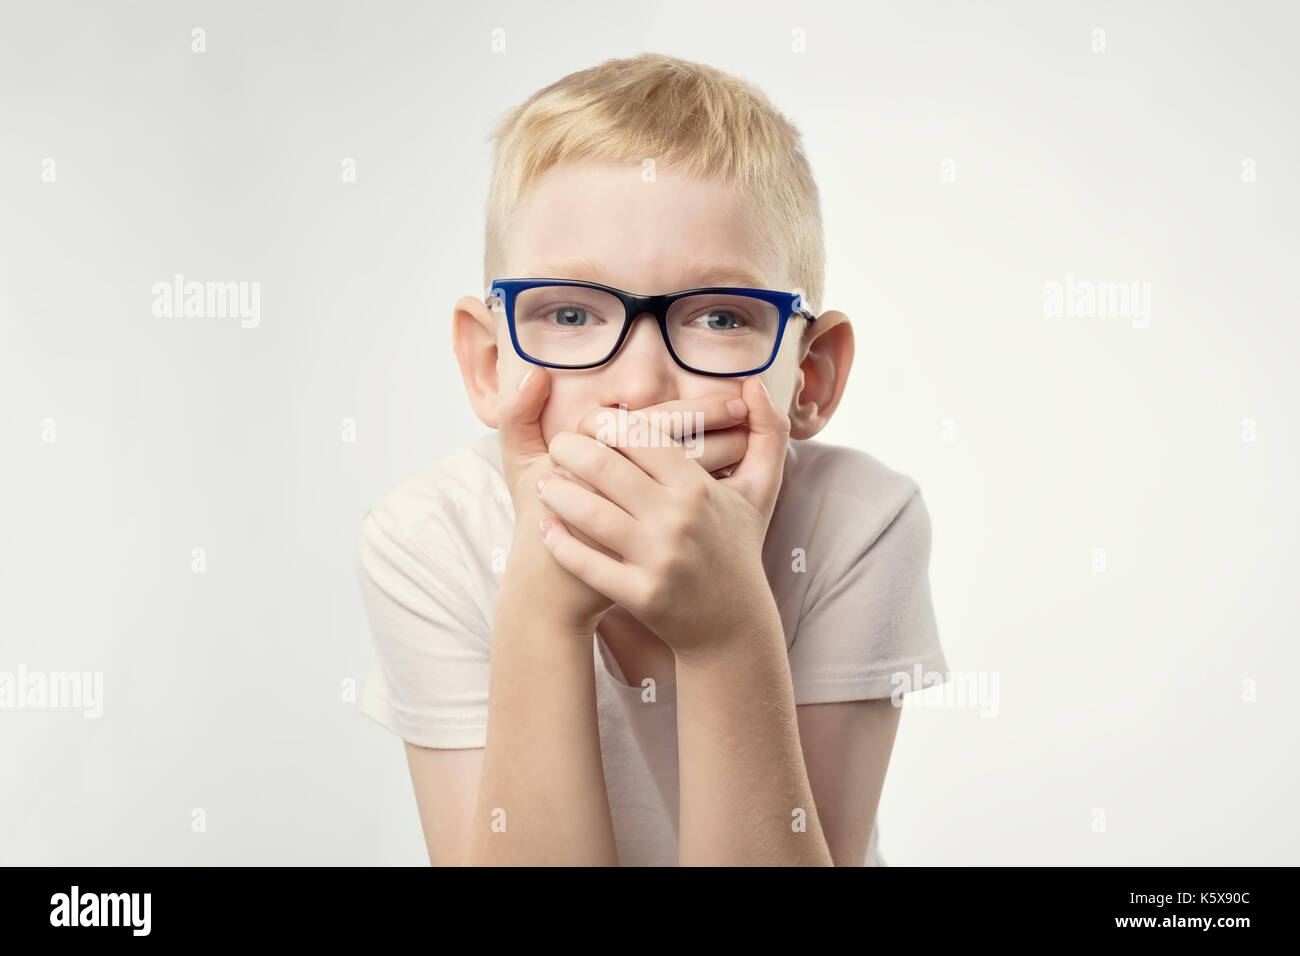 young boy kid shows sign hand gesture holding finger on lips. - Stock Image